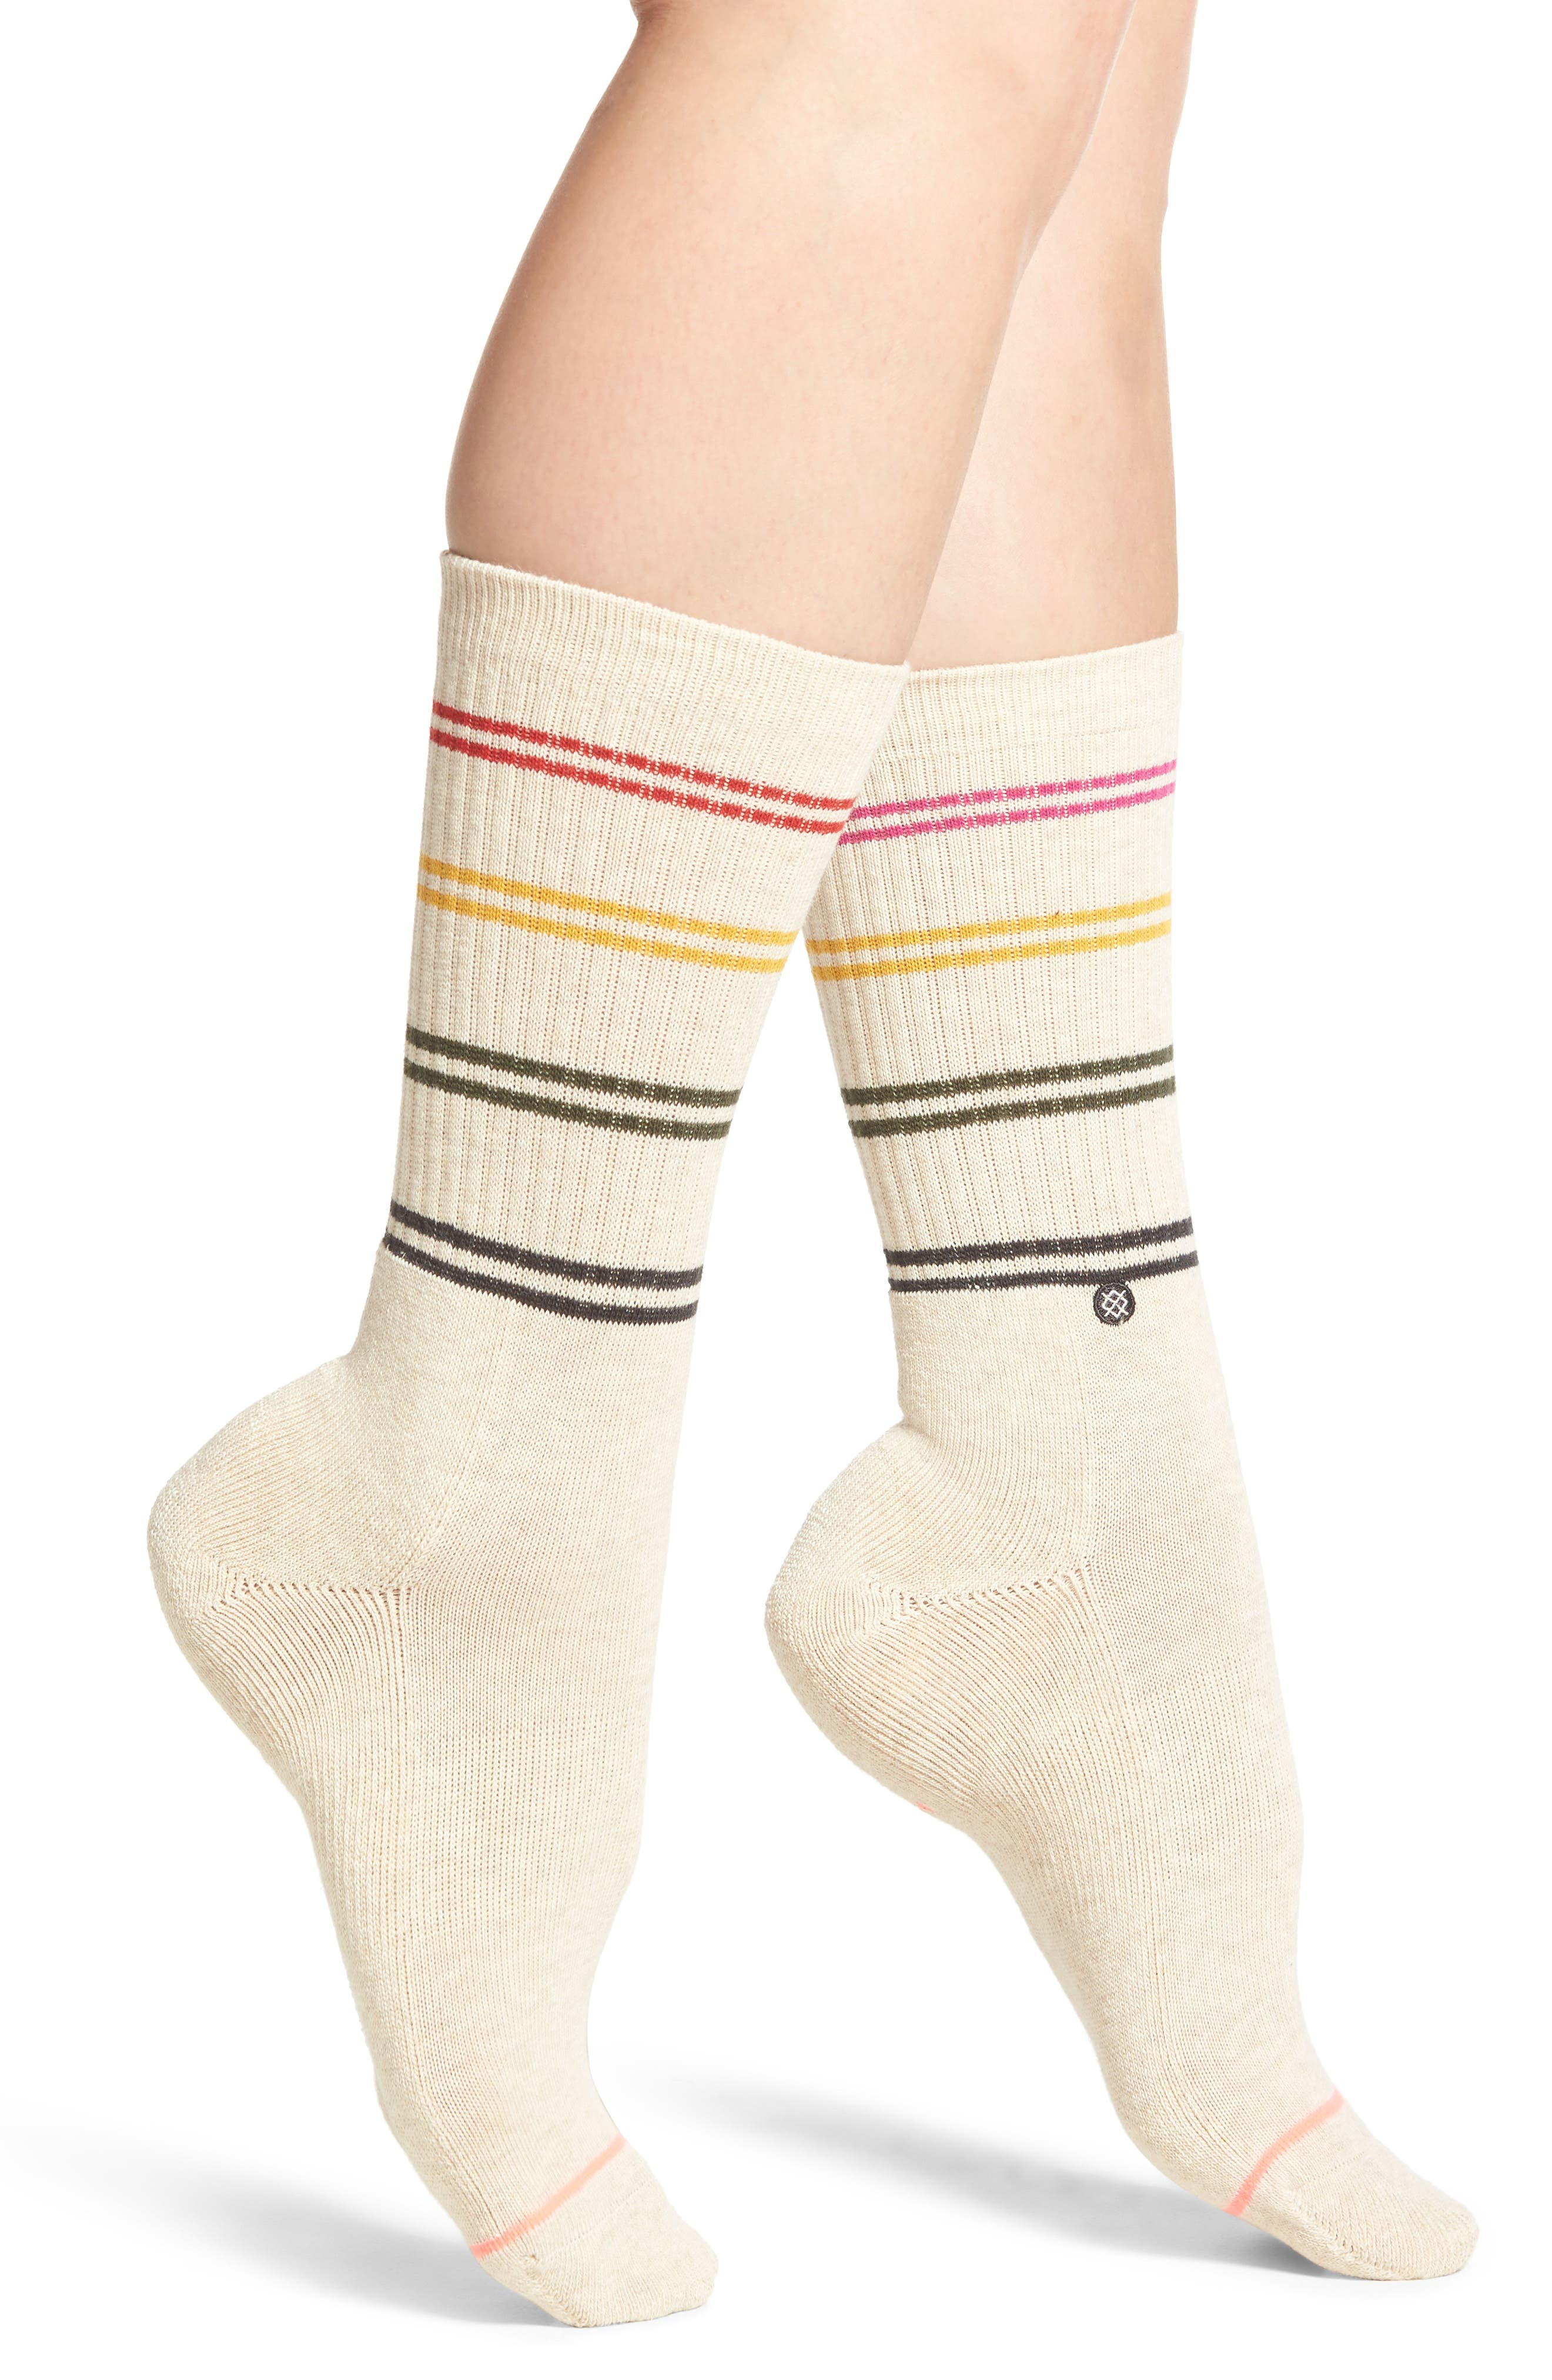 Jah Crew Socks,                             Main thumbnail 1, color,                             250